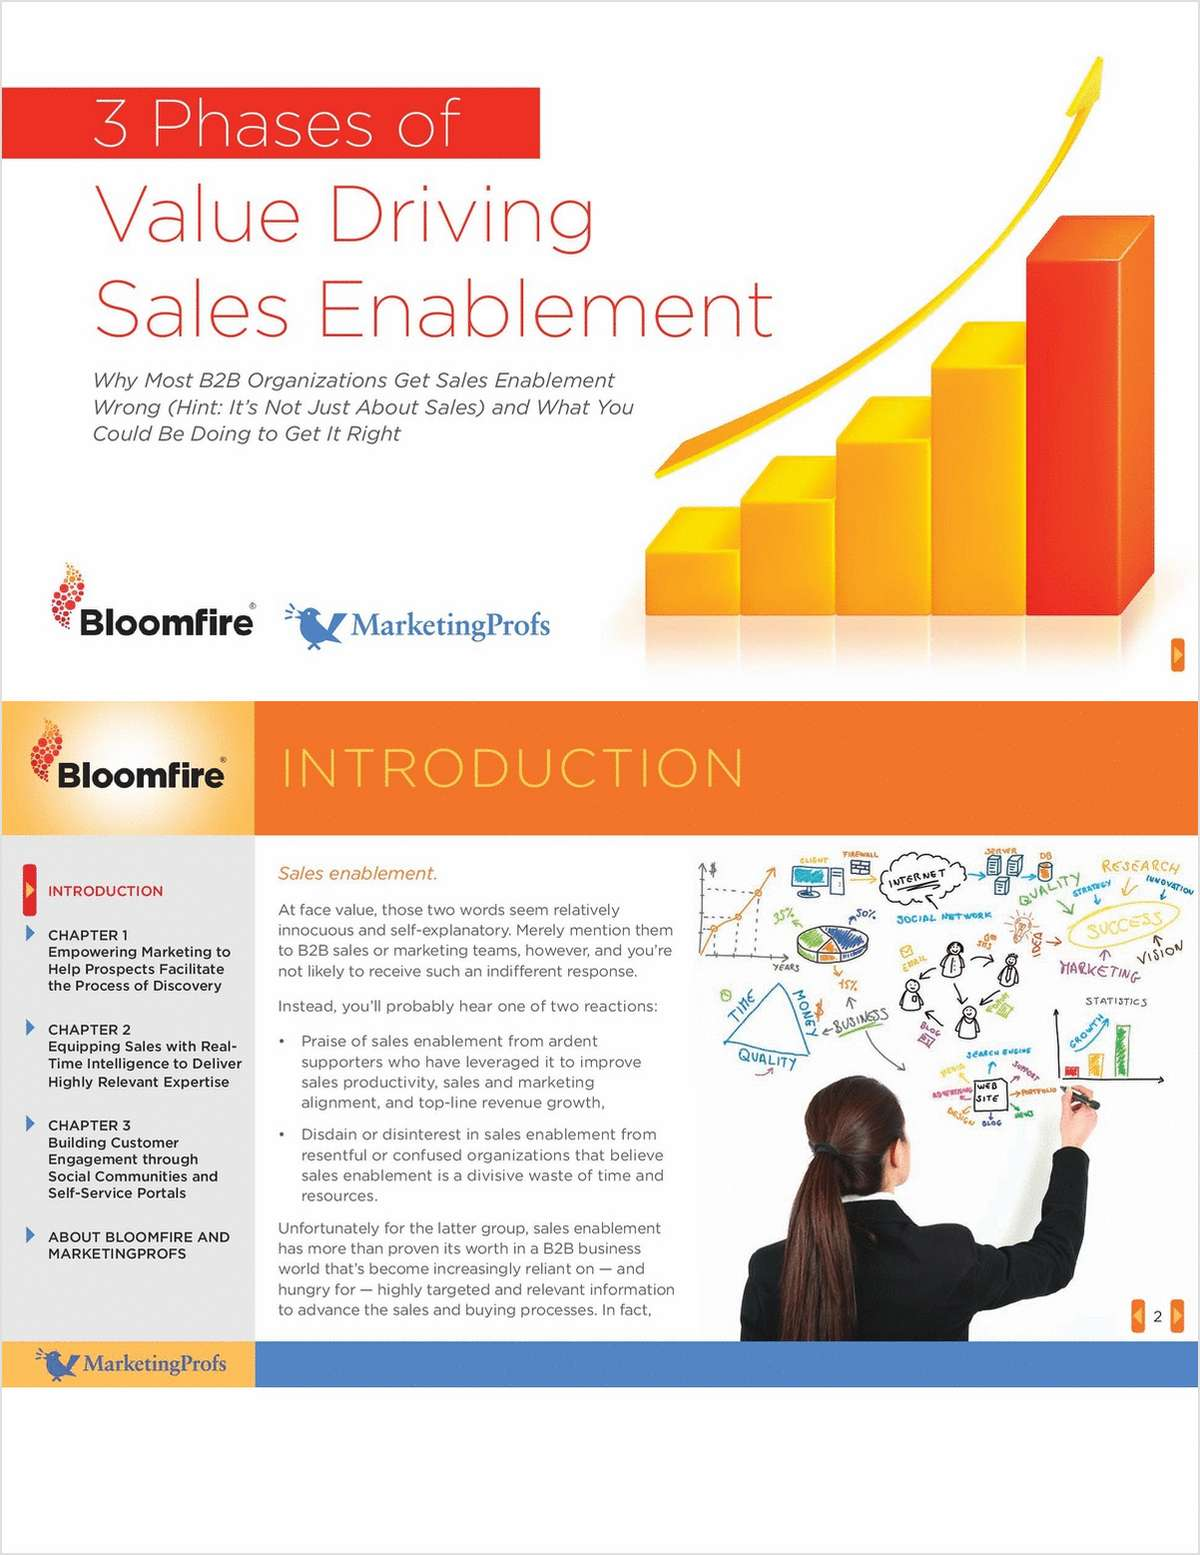 3 Phases of Value Driving Sales Enablement